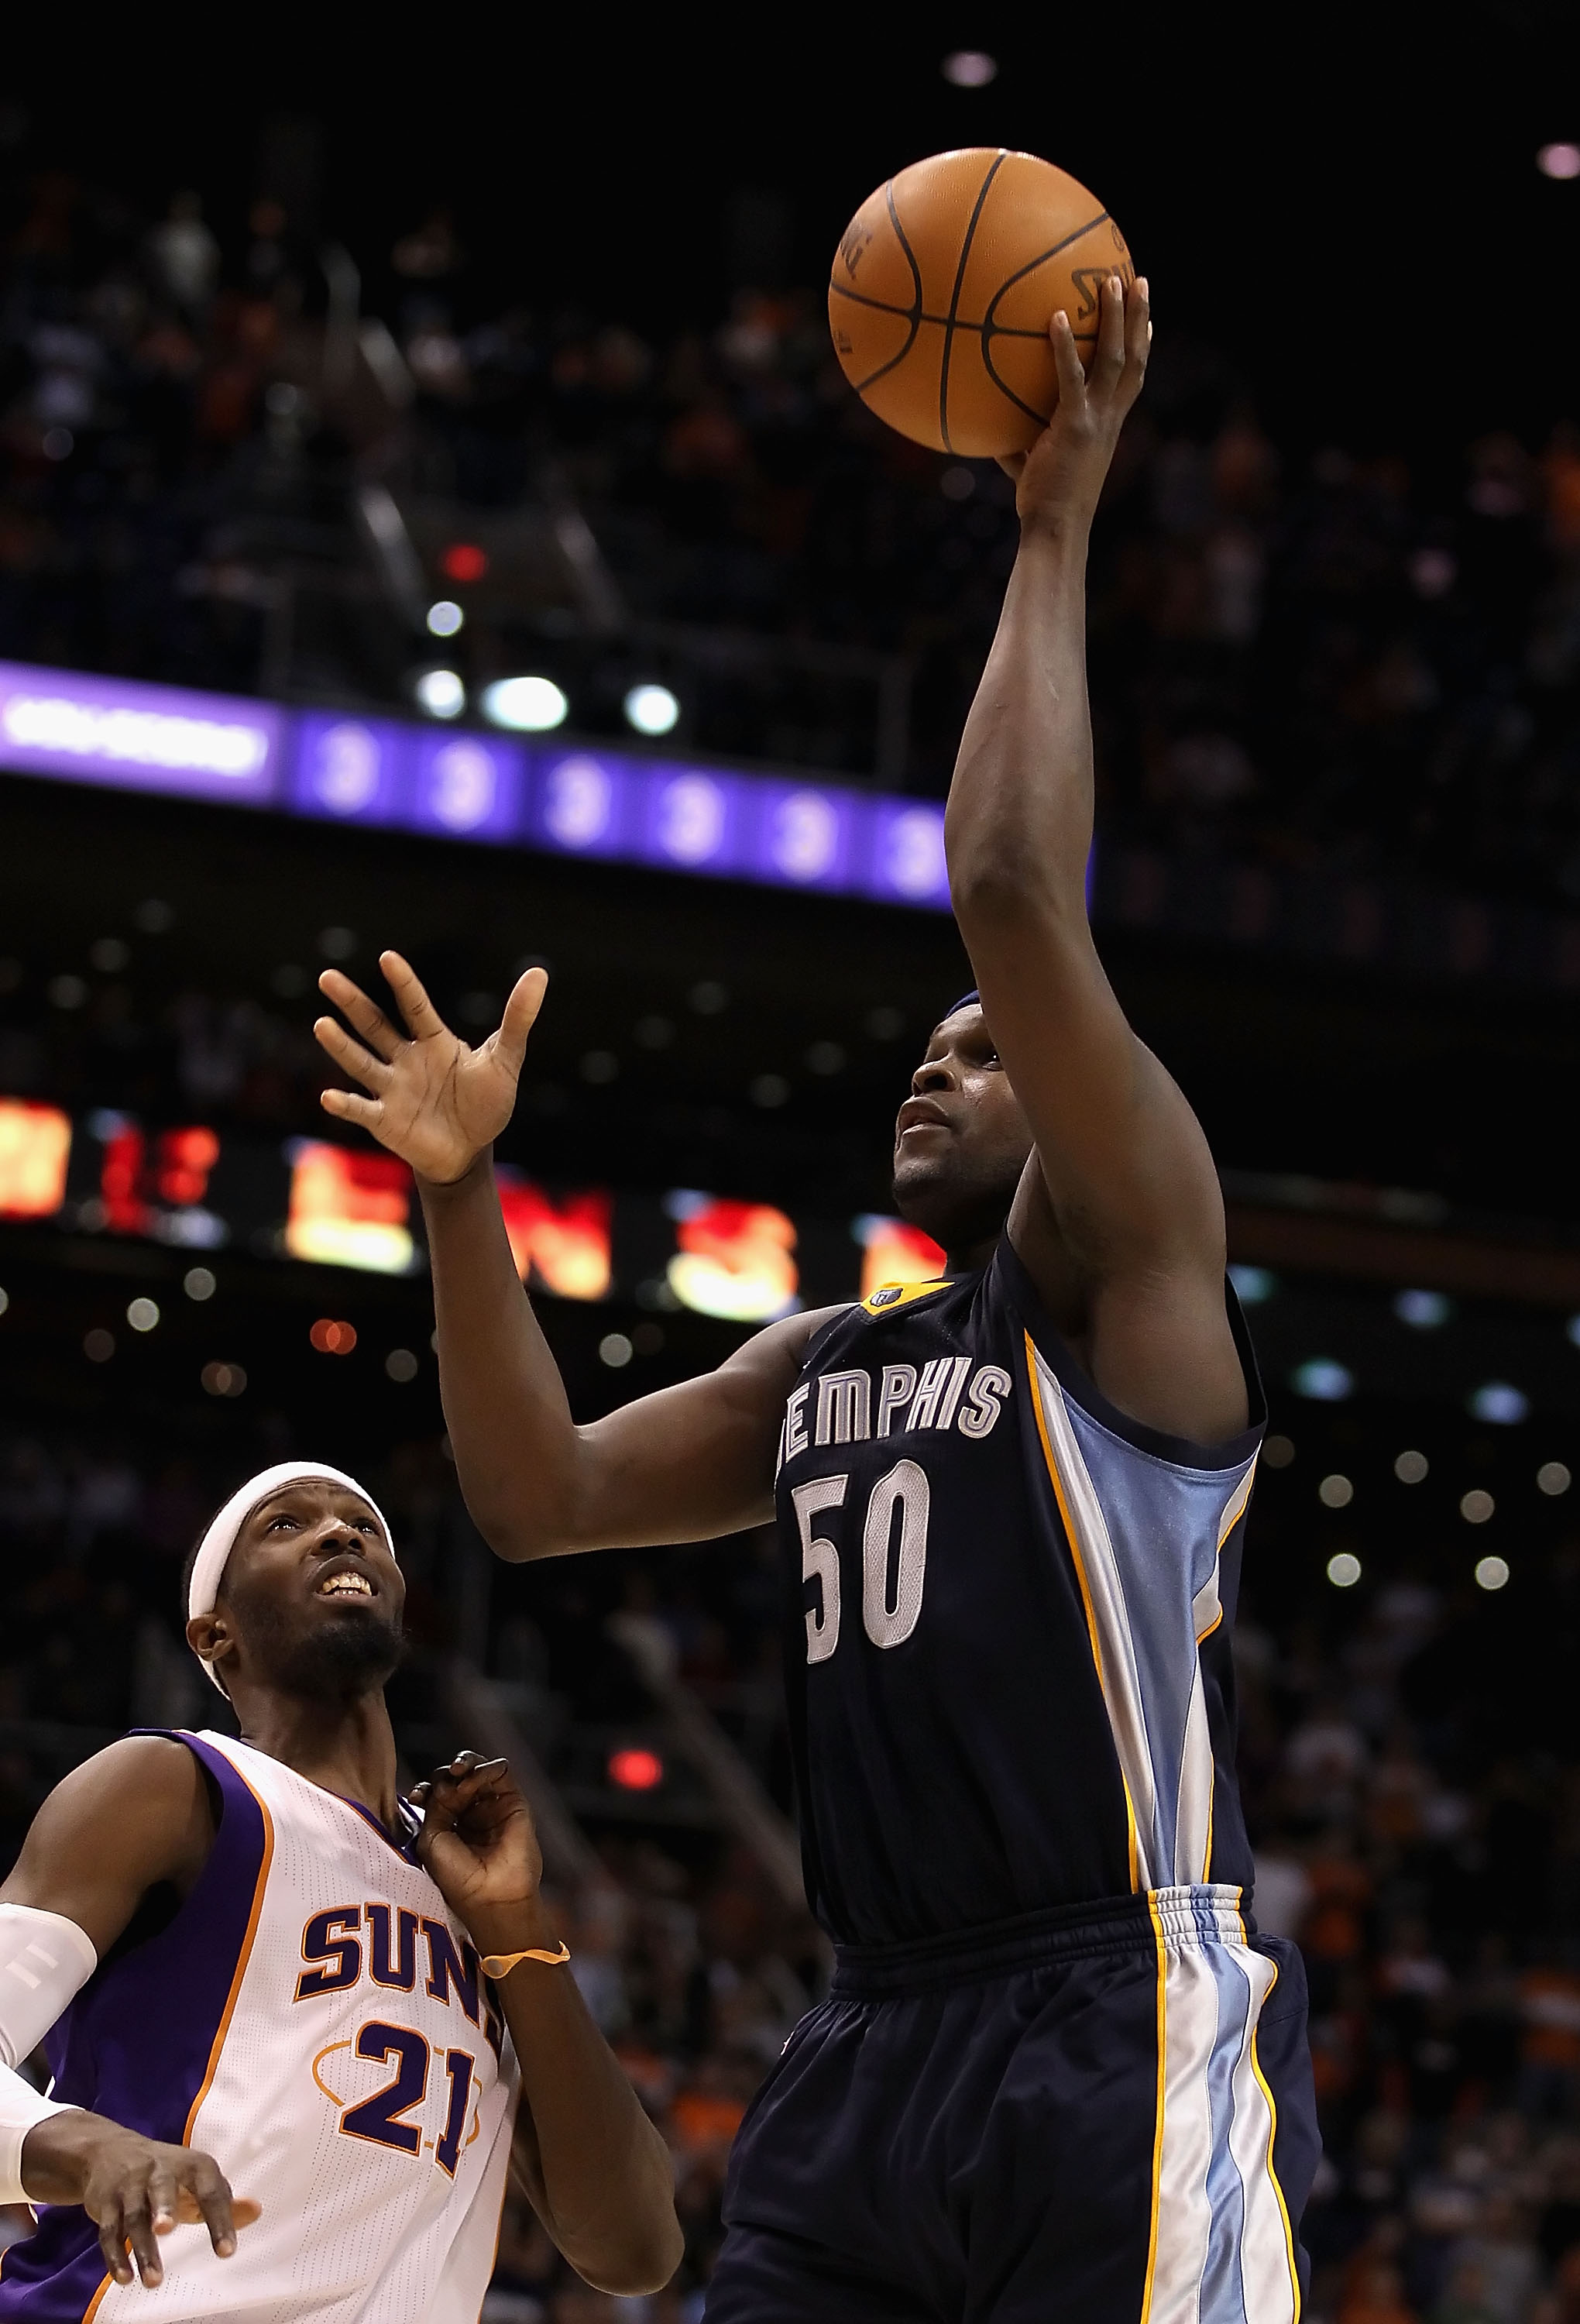 PHOENIX - DECEMBER 08:  Zach Randolph #50 of the Memphis Grizzlies puts up a shot against the Phoenix Suns during the NBA game at US Airways Center on December 8, 2010 in Phoenix, Arizona. NOTE TO USER: User expressly acknowledges and agrees that, by down